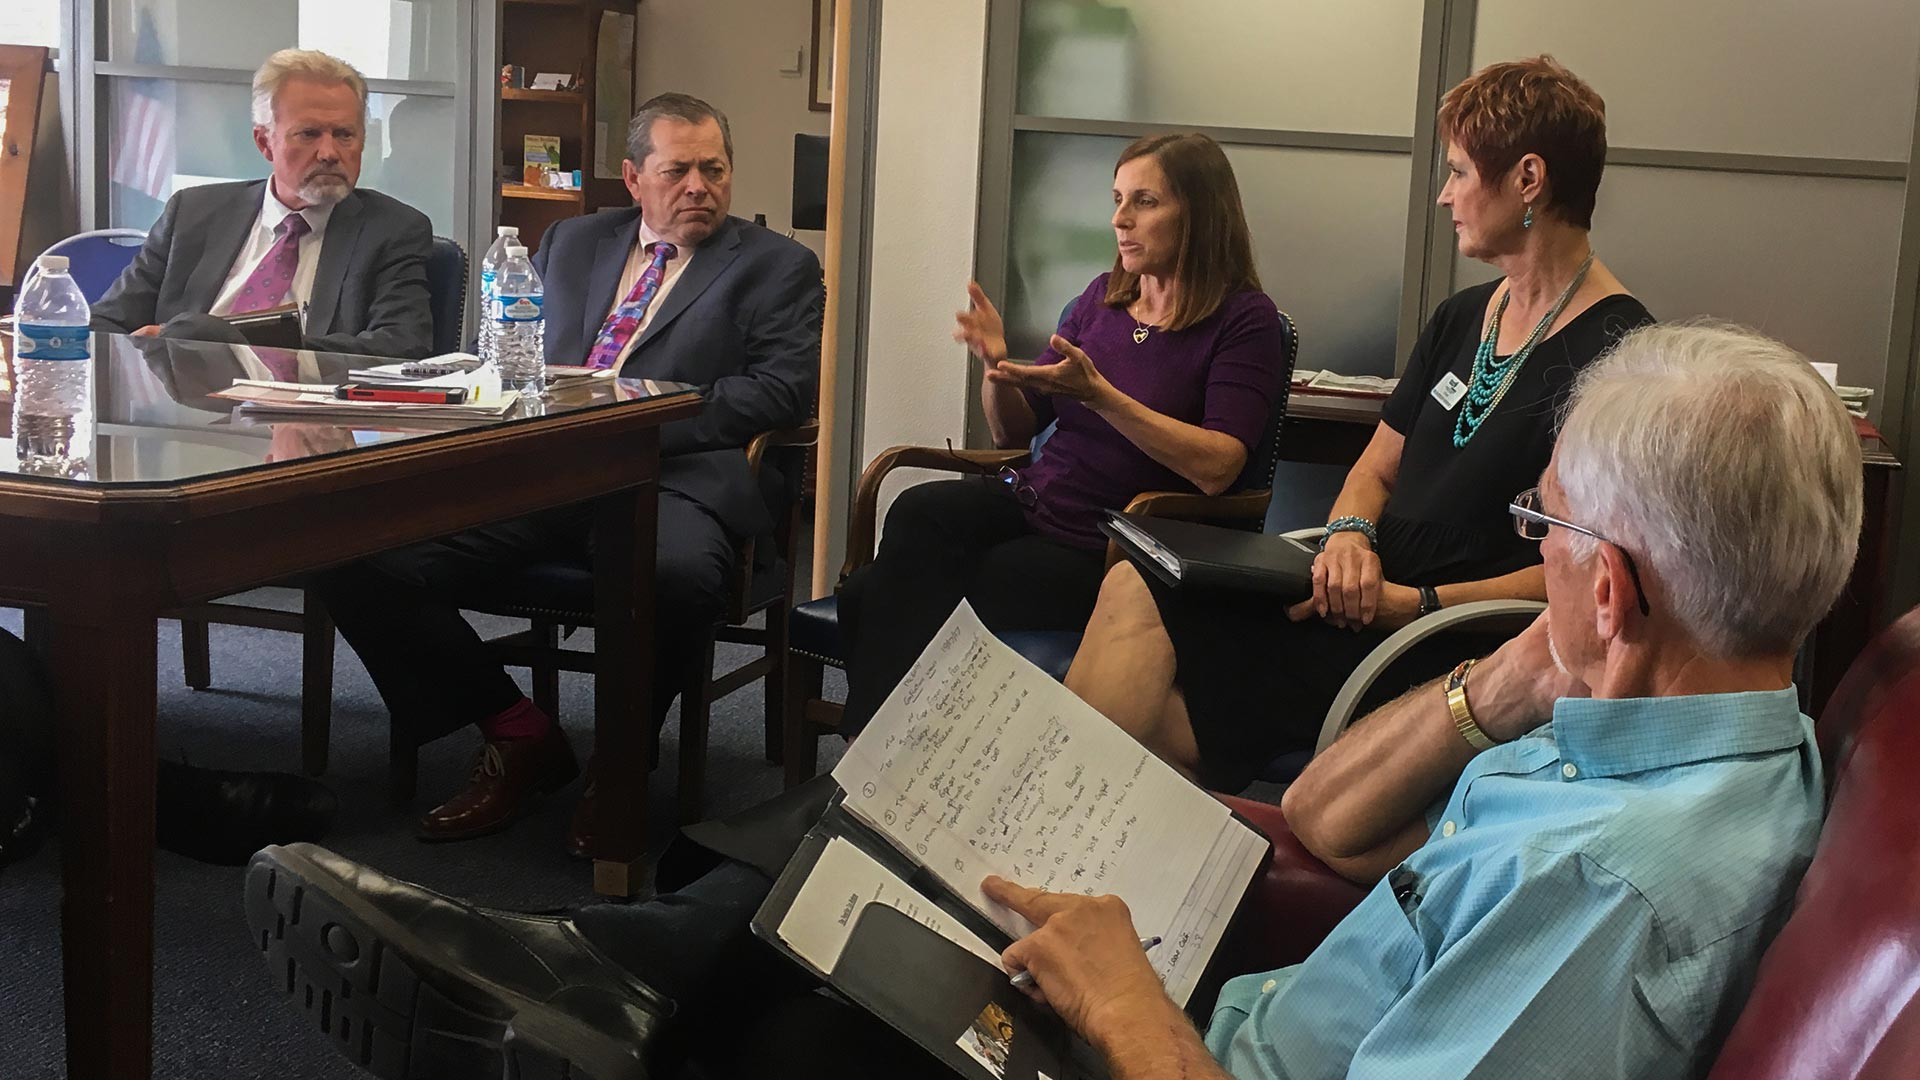 Republican Rep. Martha McSally meets with Southern Arizona business leaders in her Tucson office to talk about tax reform, Oct. 17, 2017